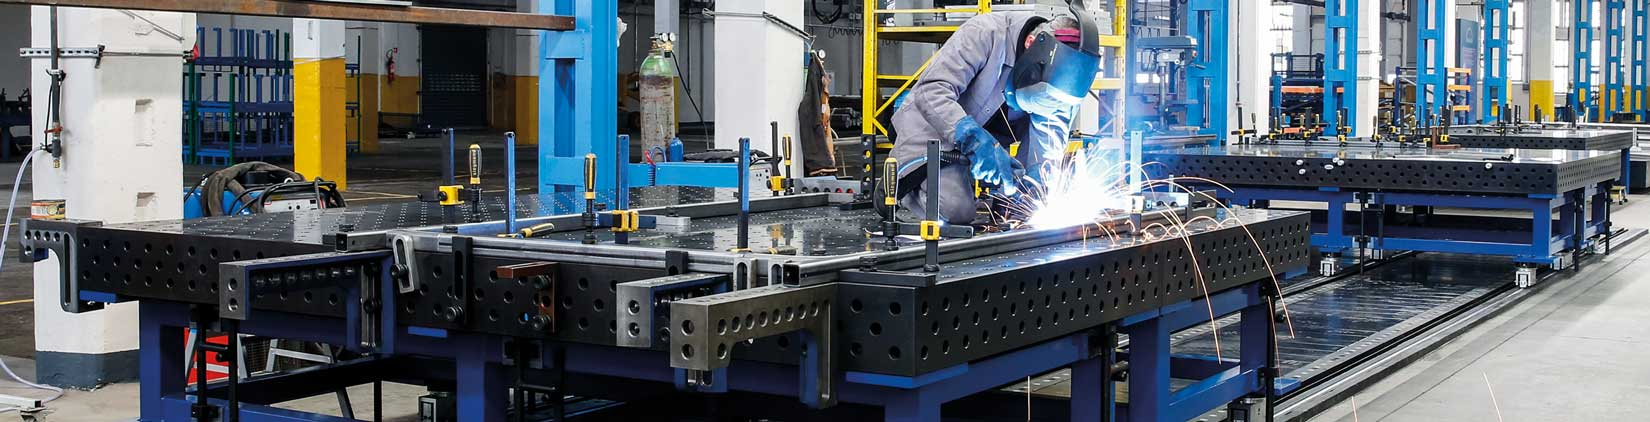 Frequently Asked Questions What Are The Benefits Of Plasma Nitride Treatment For Welding Tables